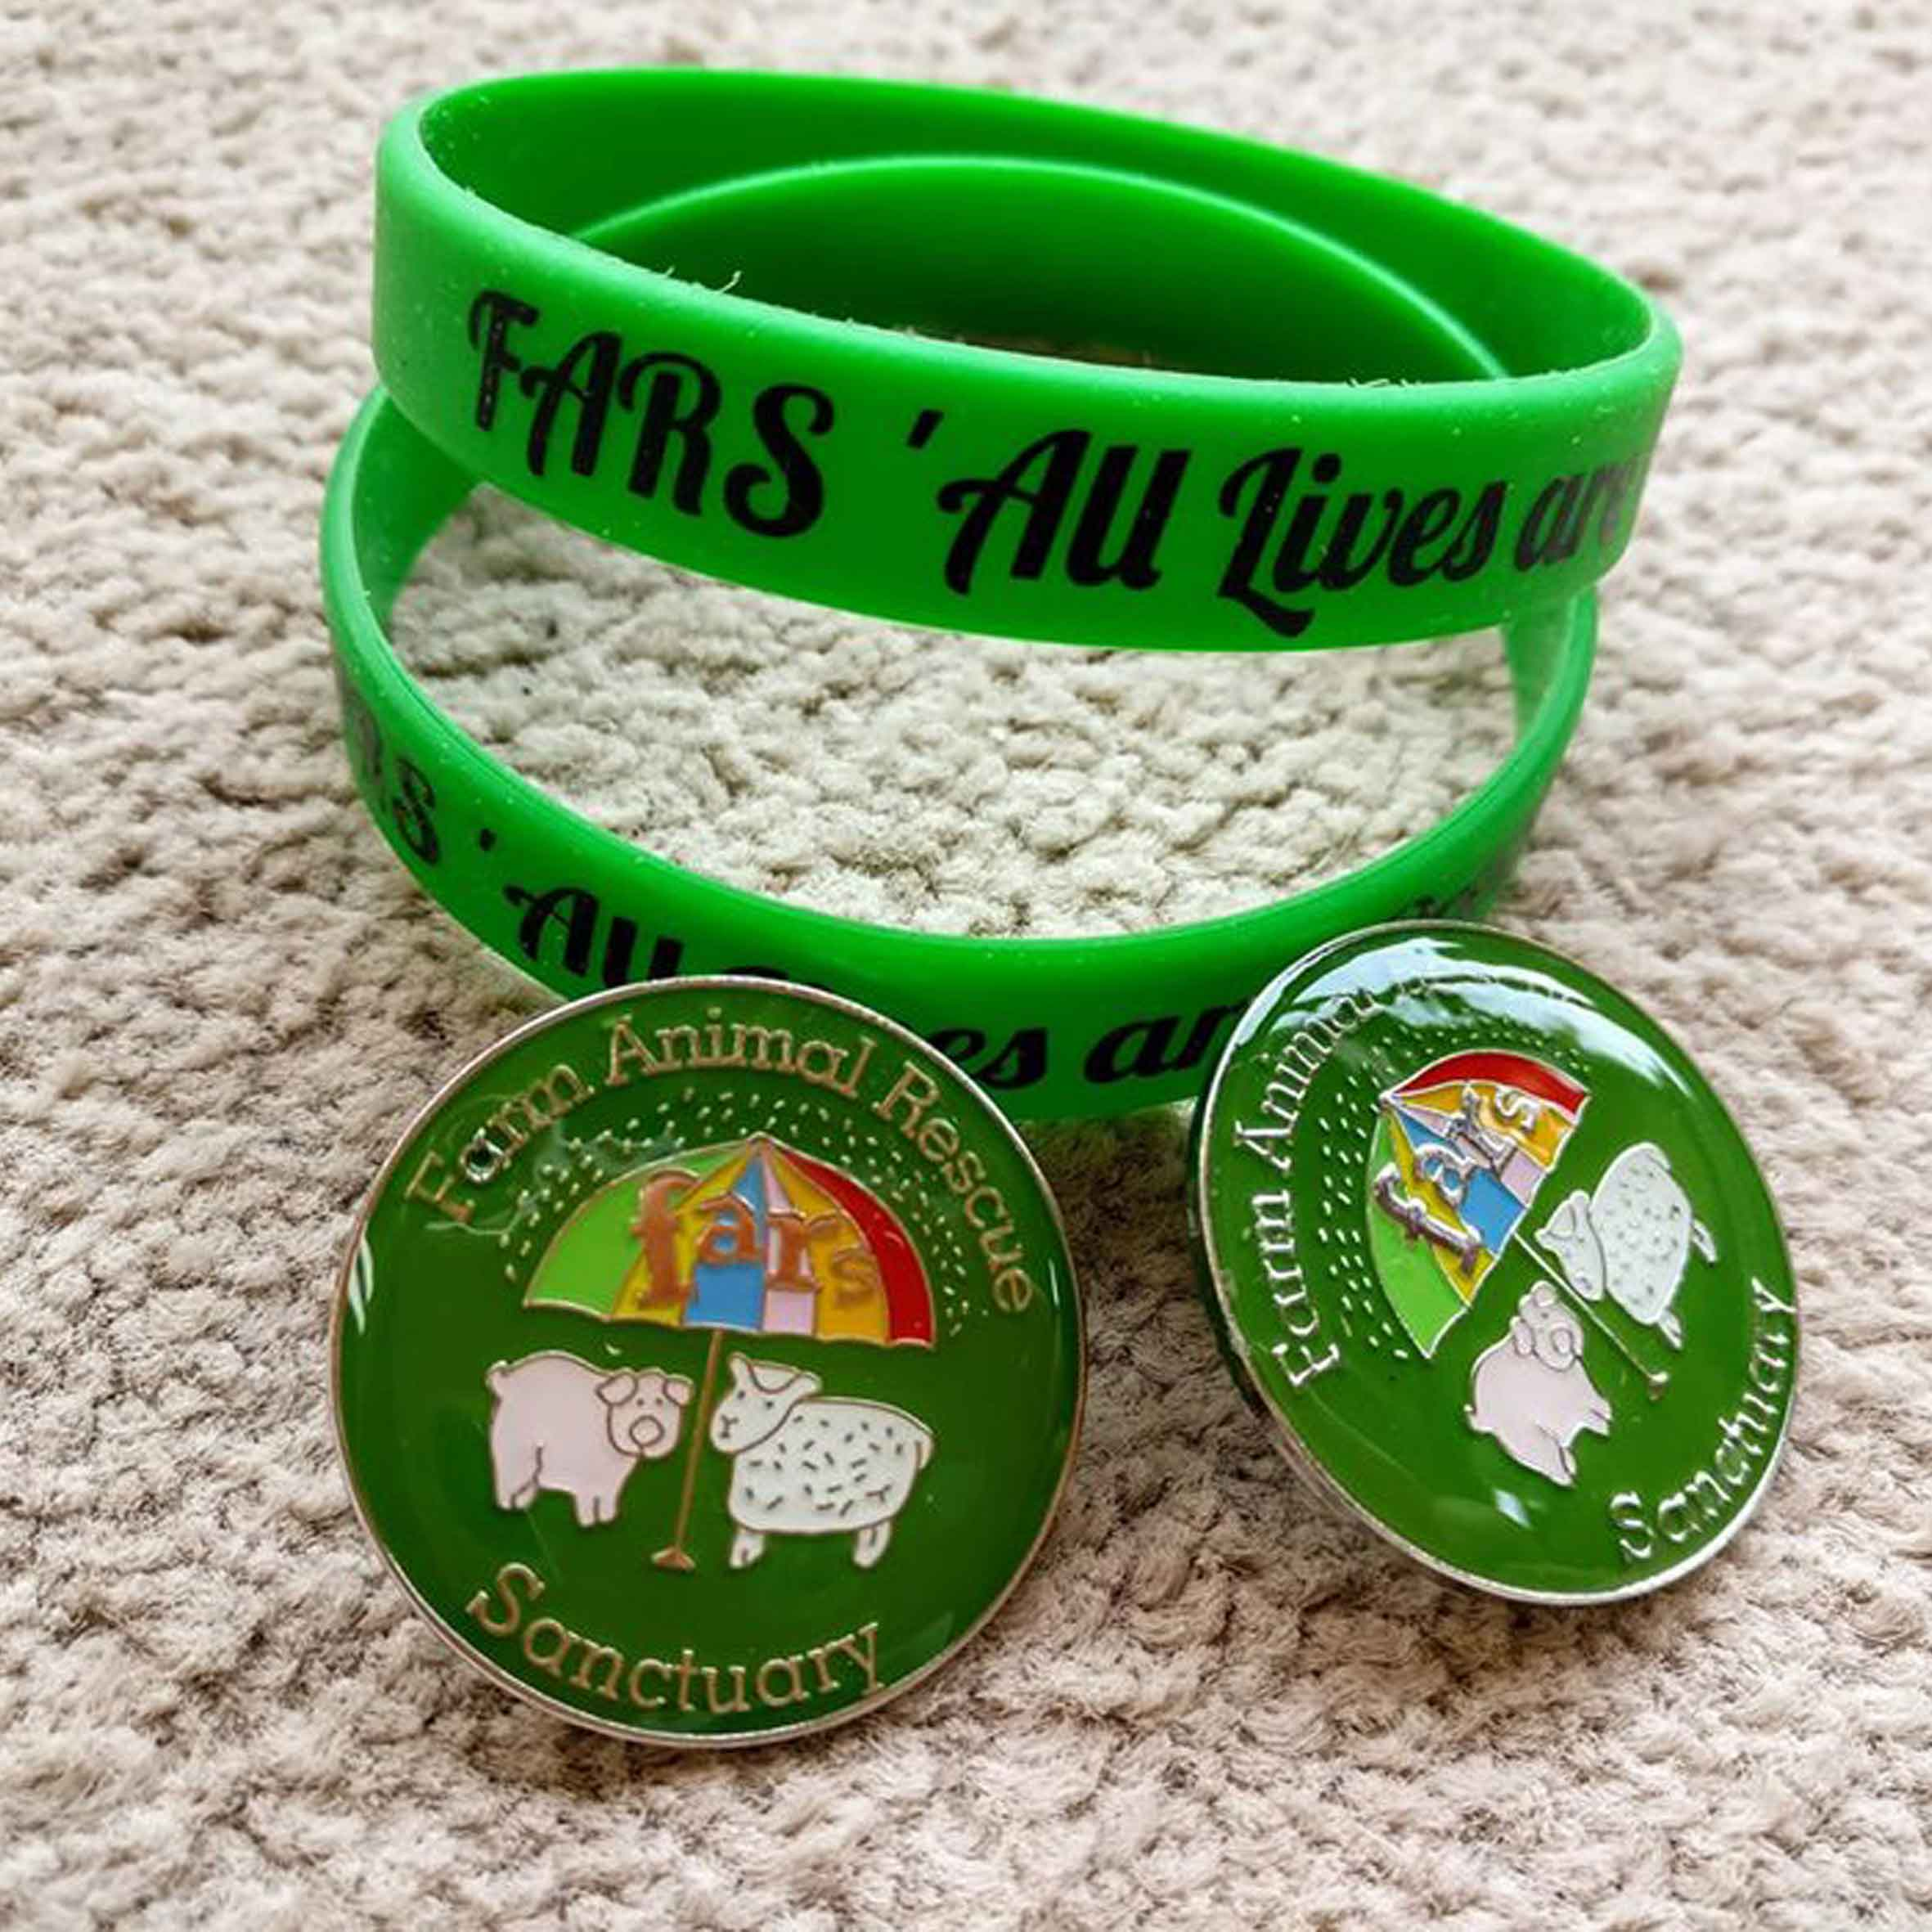 FARS Badges and Wristbands